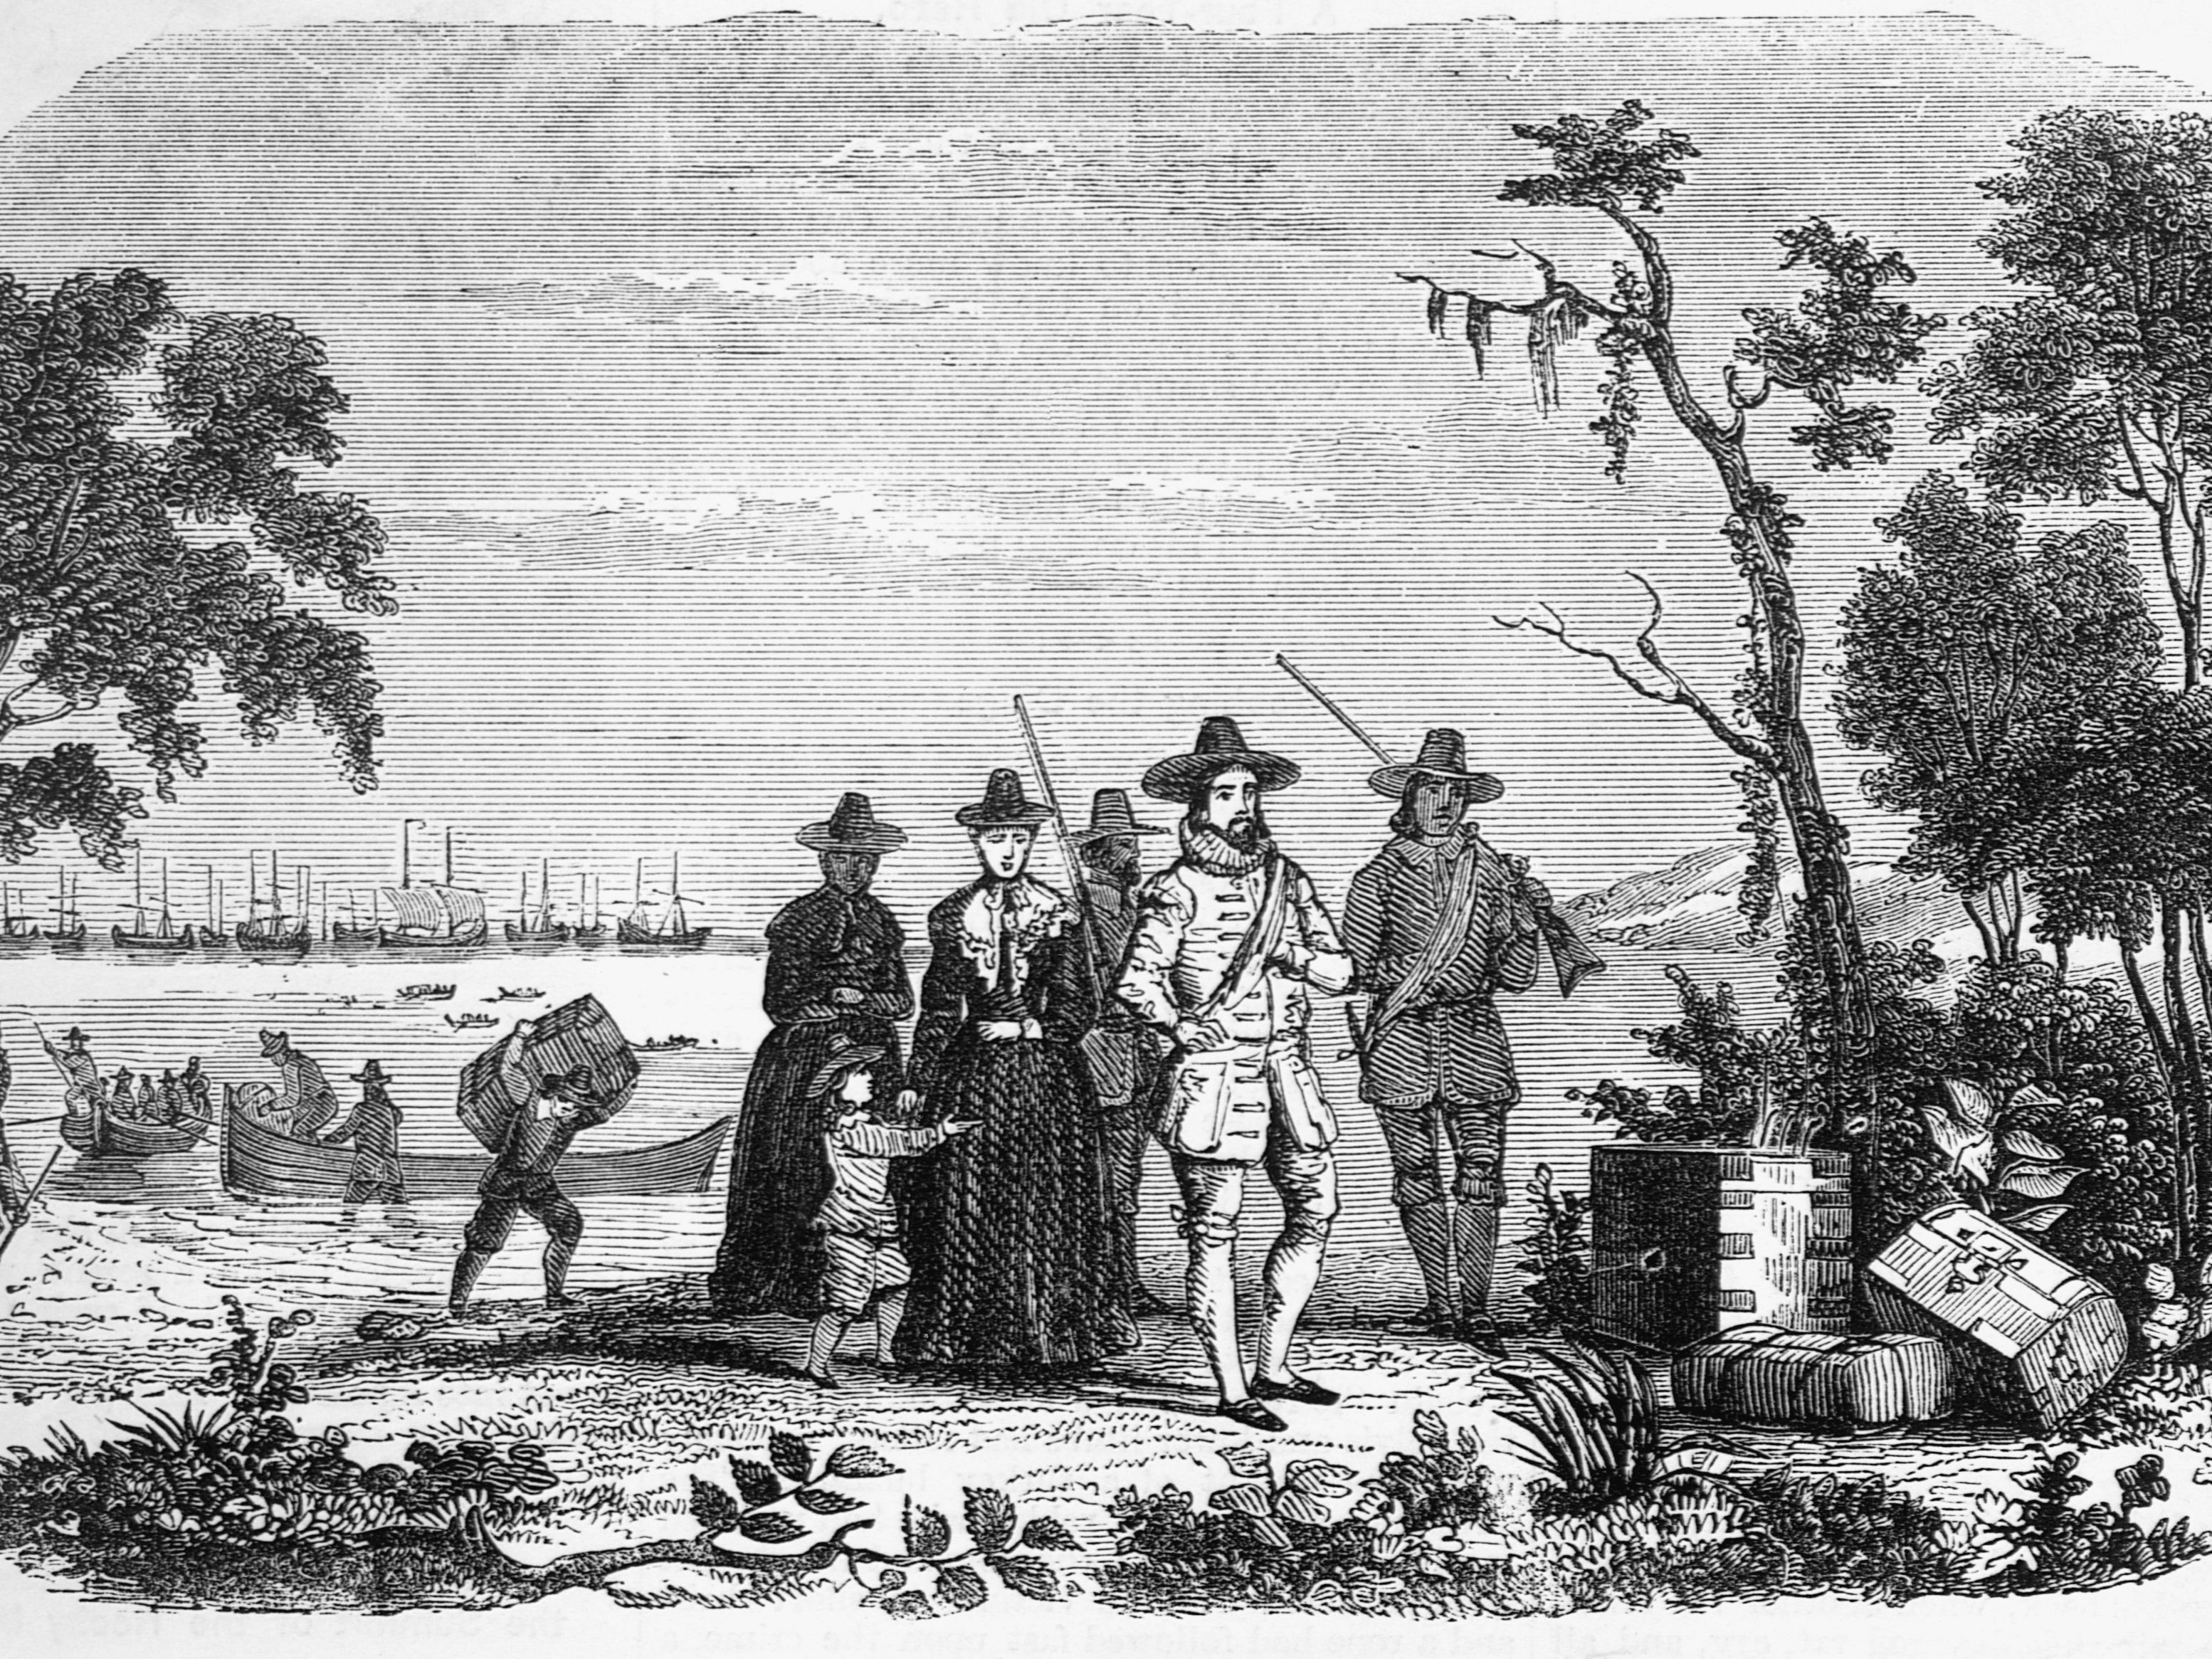 The Founding of the Massachusetts Bay Colony